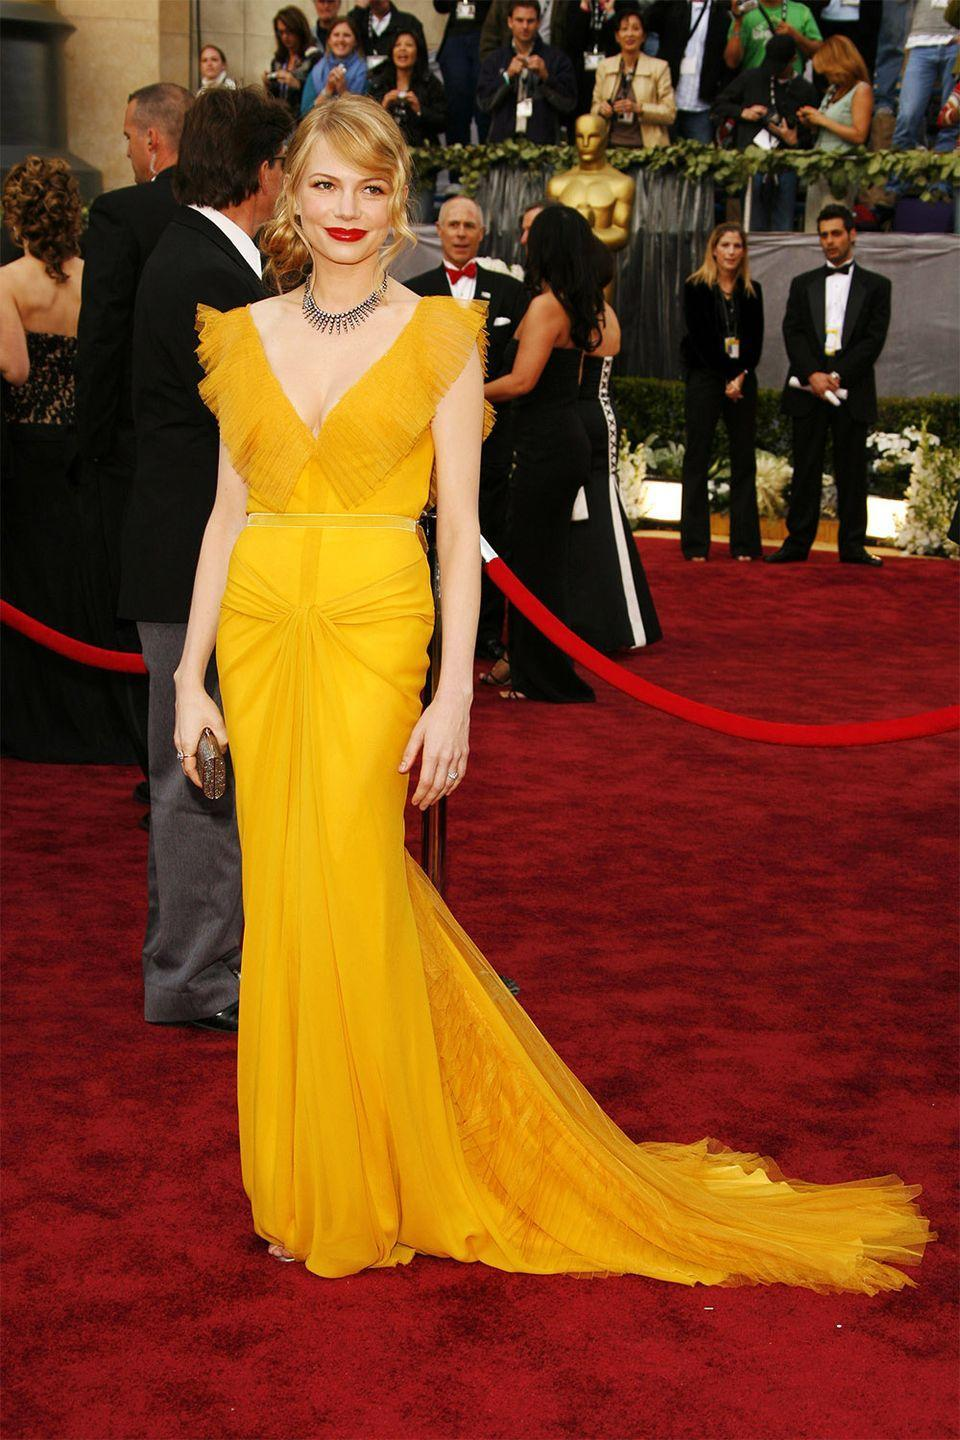 <p>Michelle Williams's saffron Vera Wang dress has become one of the most memorable fashion moments. The actress attended with her then-boyfriend, the late Heath Ledger, who was nominated for his role in <em>Brokeback Mountain, </em>where they both met. </p>